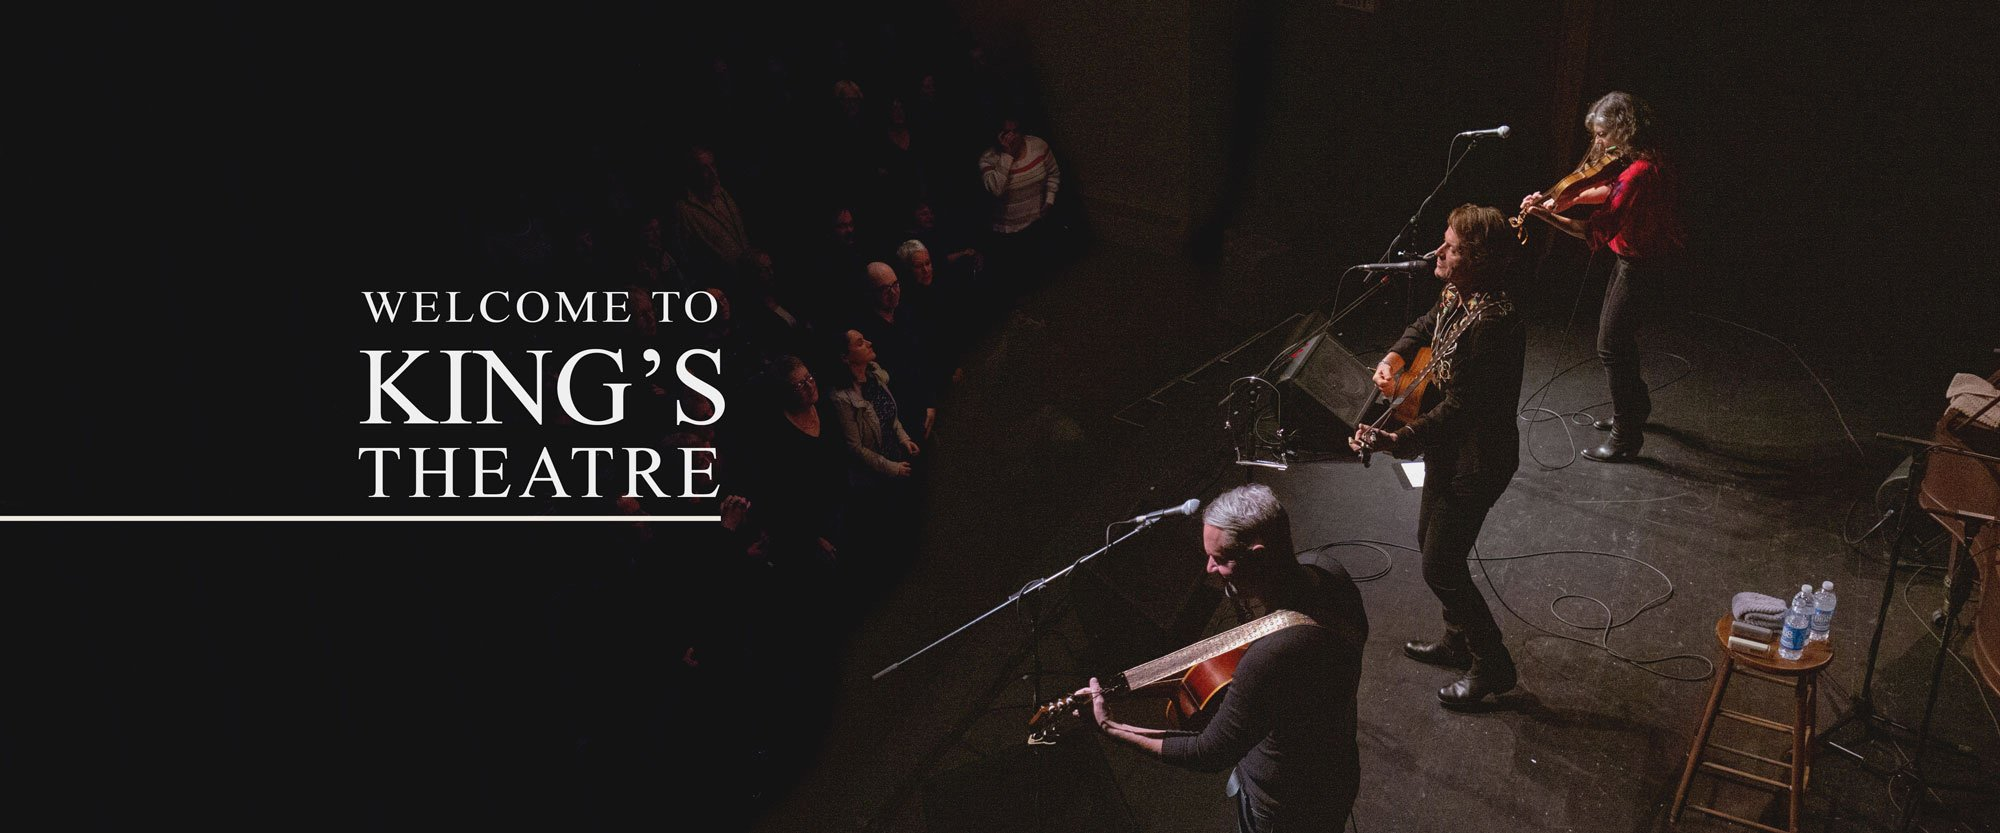 Kings Theatre Title